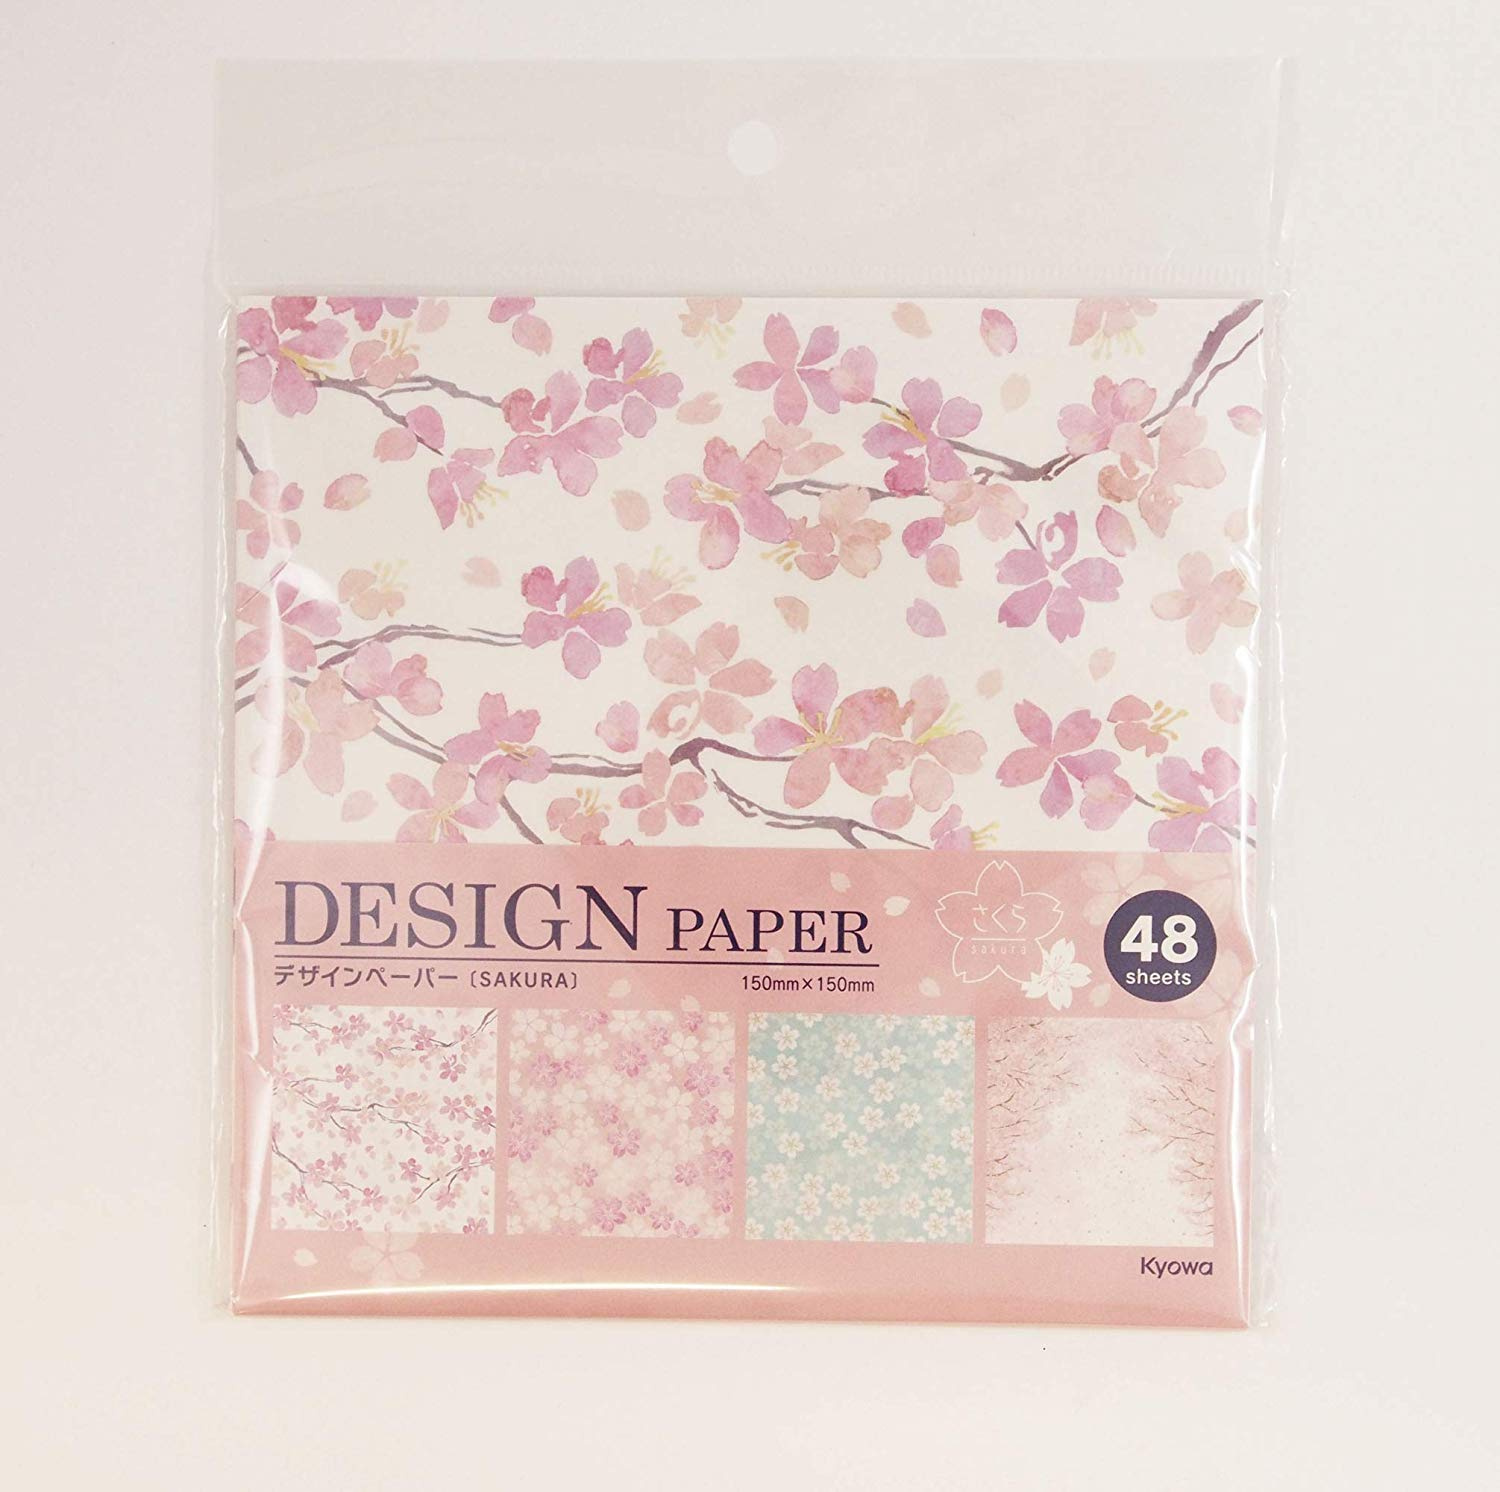 Sakura a.k.a. Chiyogami Each Contains Four Different Designs Beautiful Japanese Origami Paper Cherry Blossoms Made in Japan